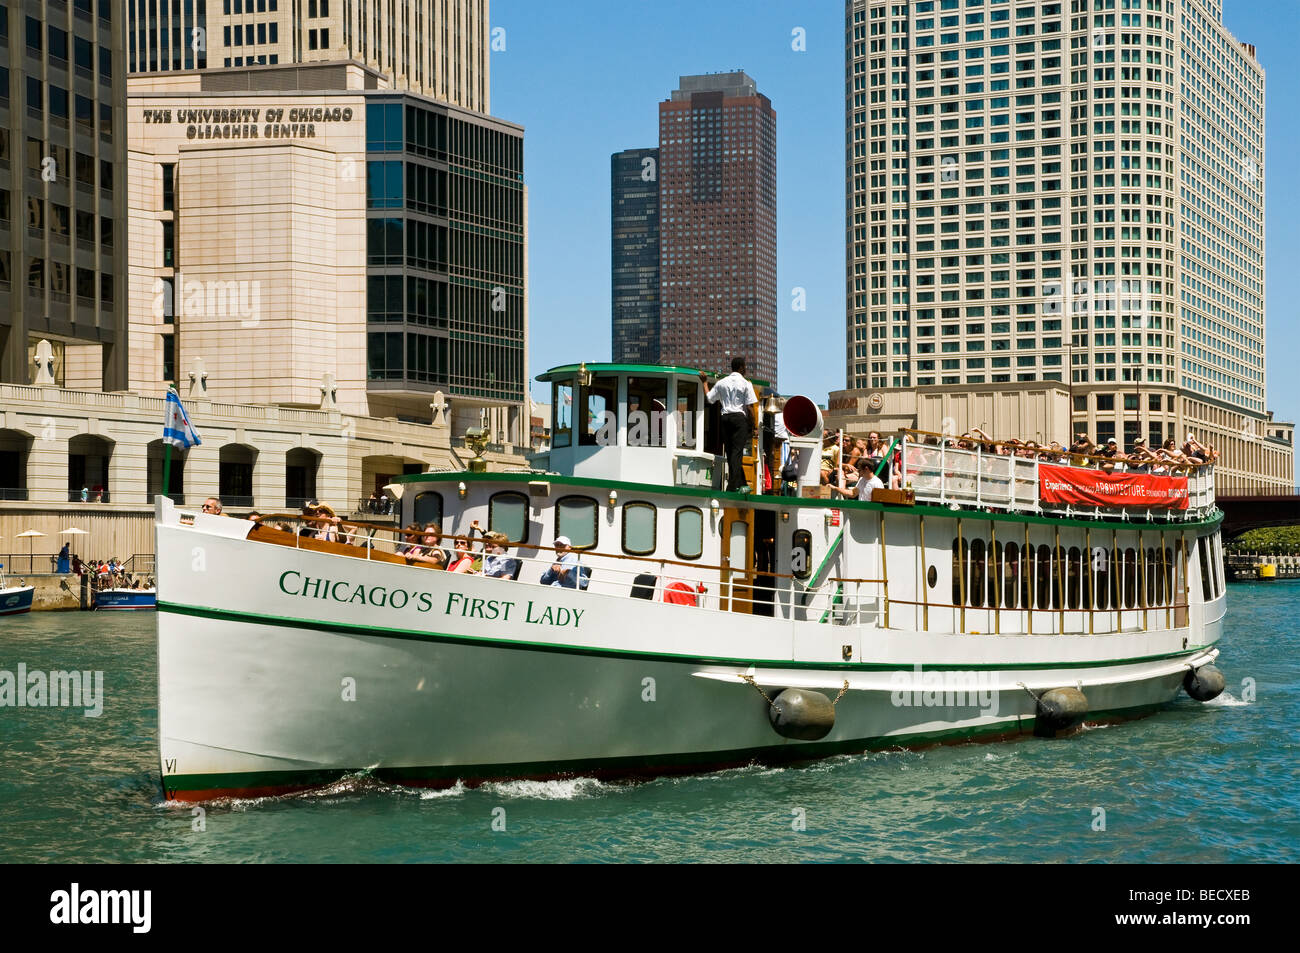 Architectural tour boat quotchicago39s first ladyquot cruising up for Architecture tour chicago boat